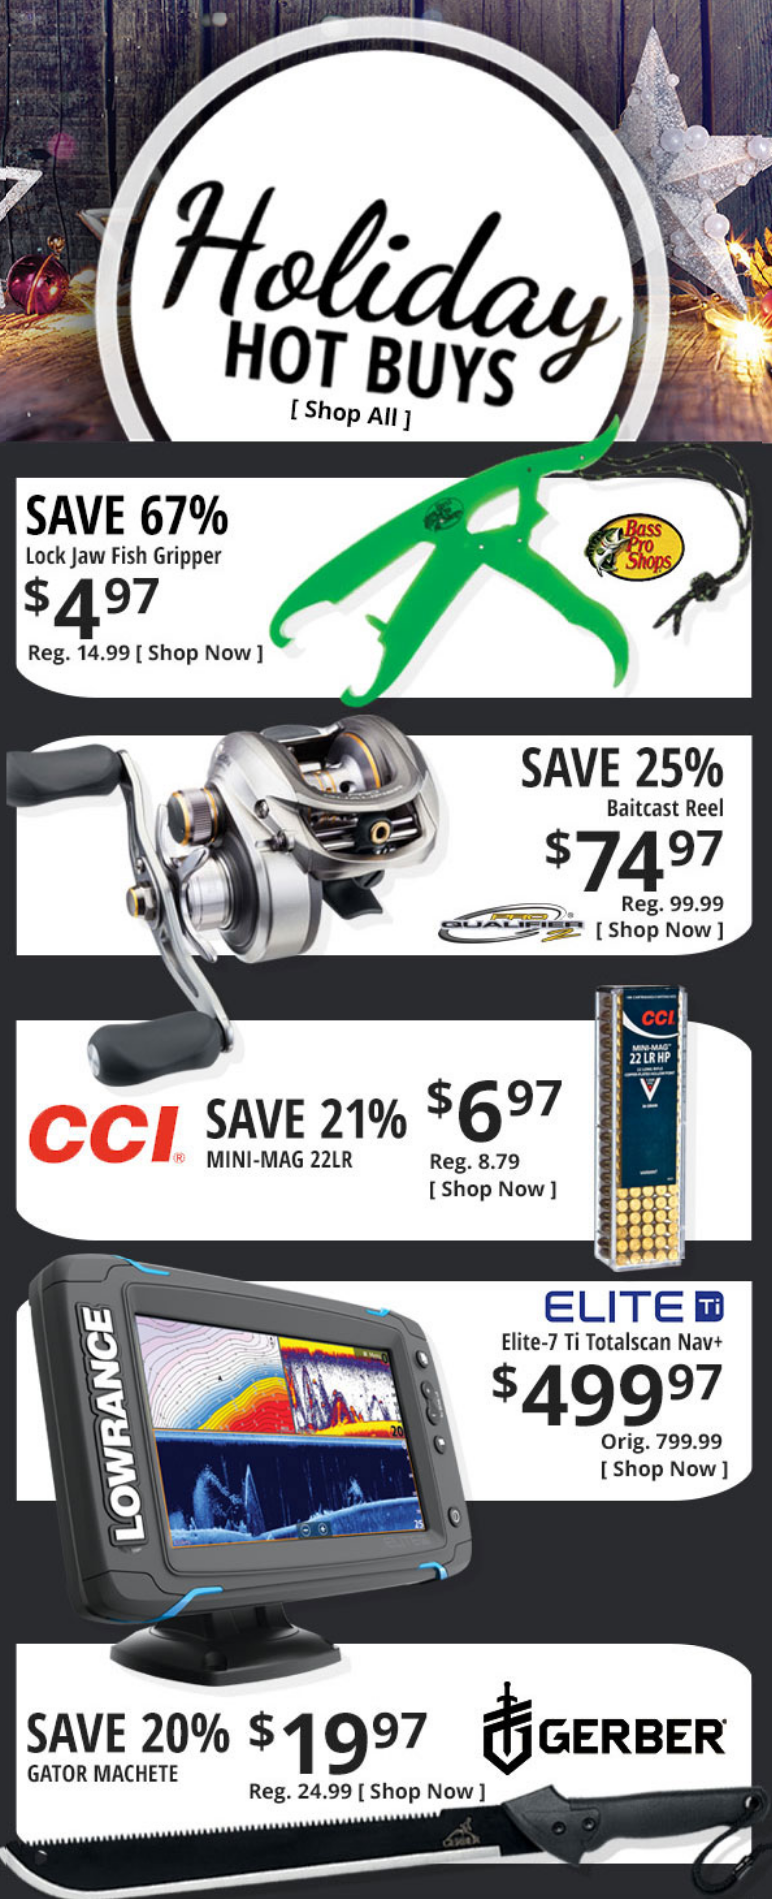 Enjoy your favorite products at even lower prices than you thought possible!